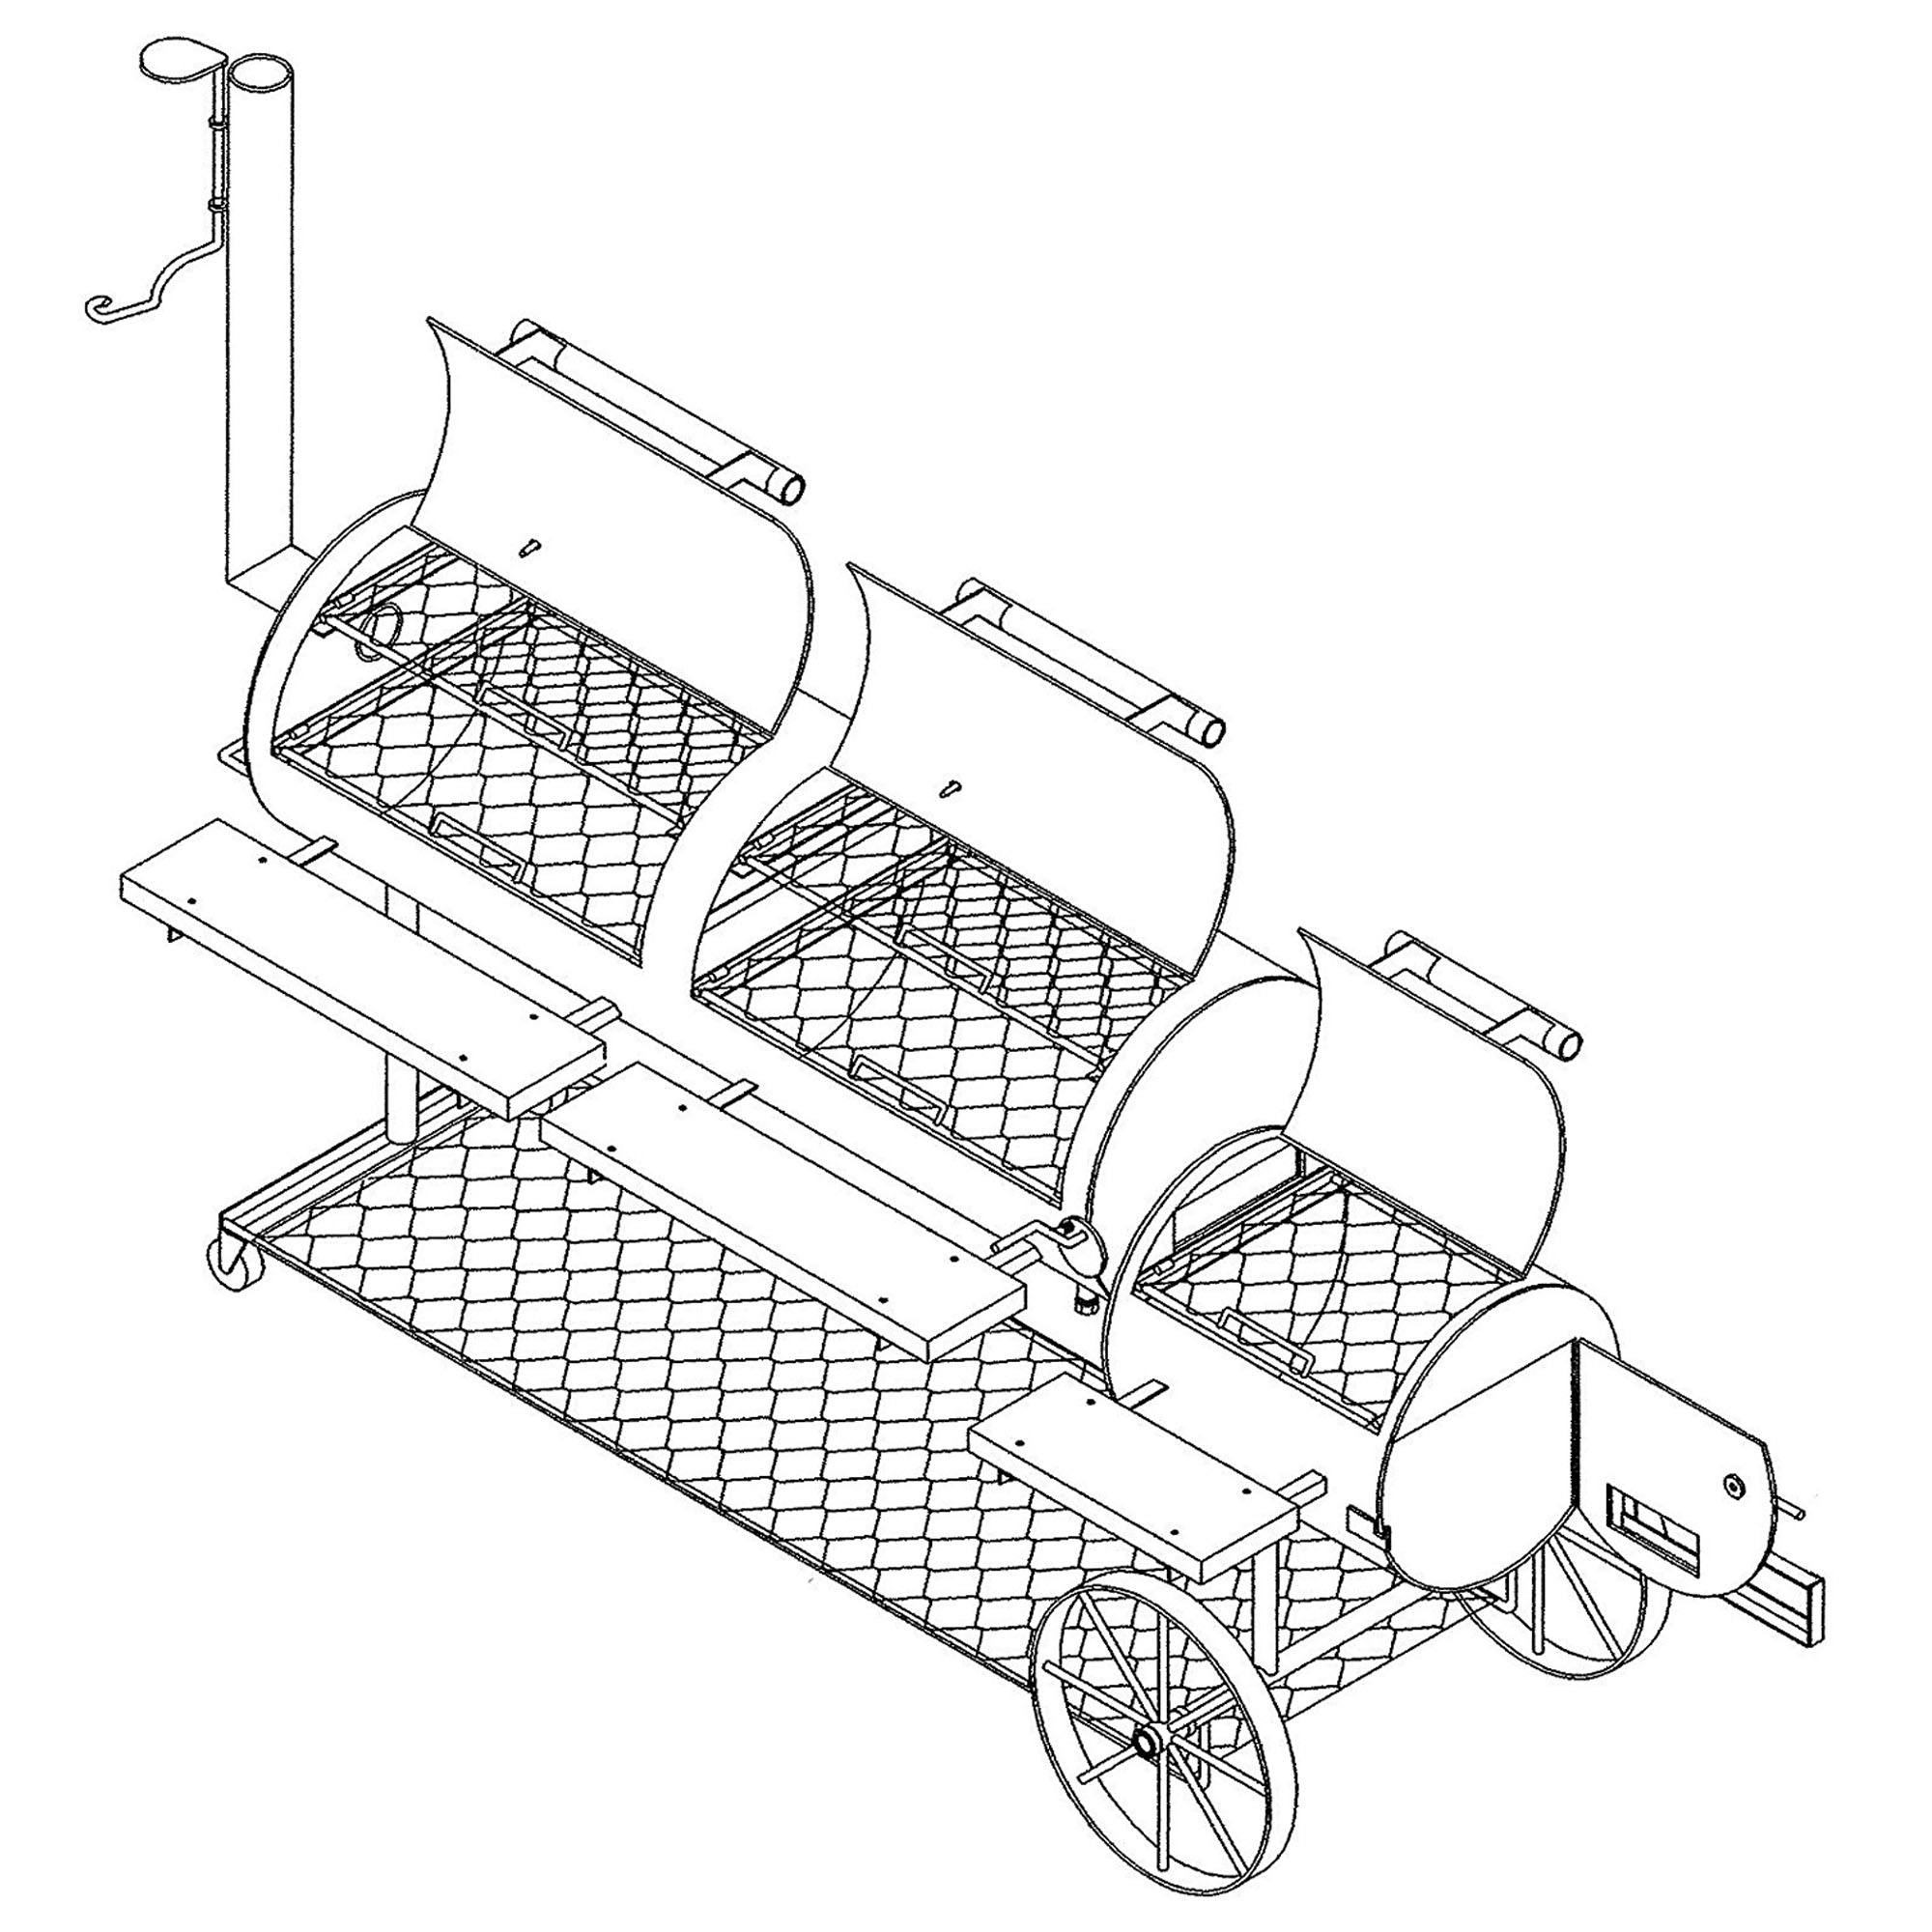 Bbq Pit Drawing at GetDrawings com | Free for personal use